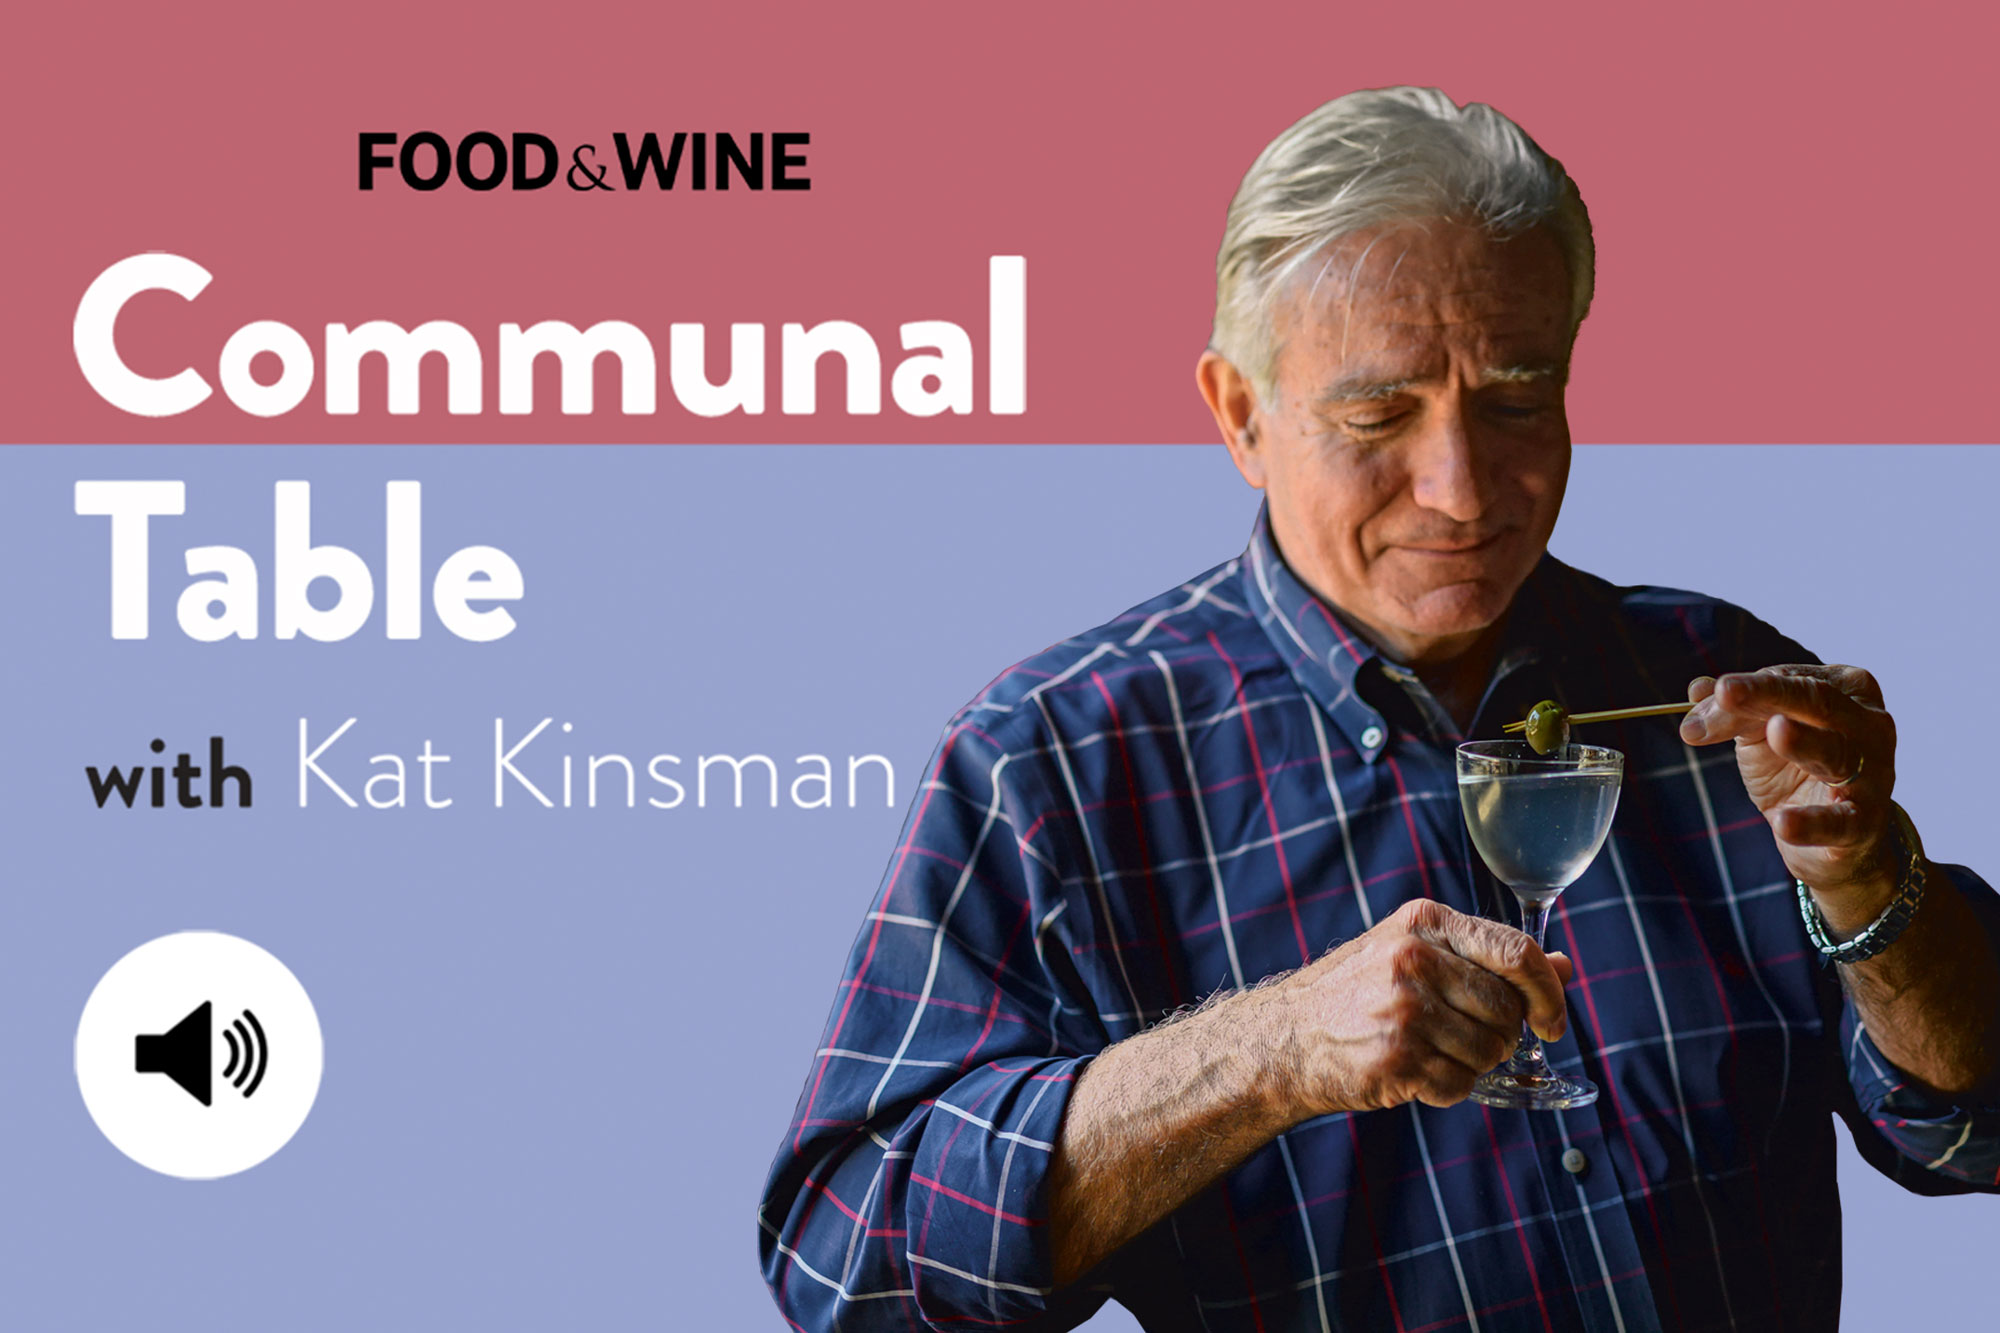 Communal Table with Kat Kinsman featuring Dale Degroff